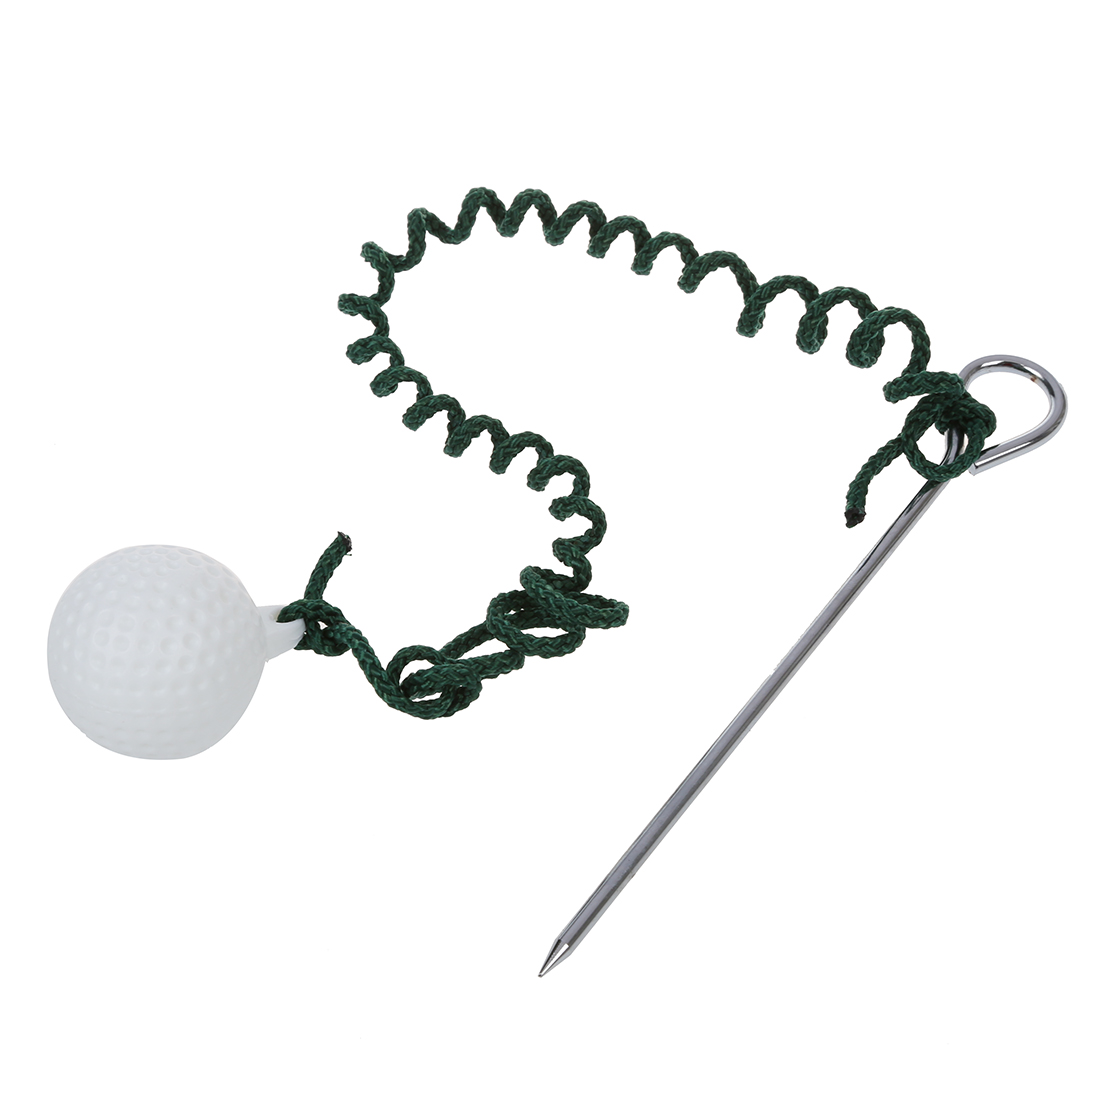 Golf Driving Ball Swing Hit Practice Training Aid